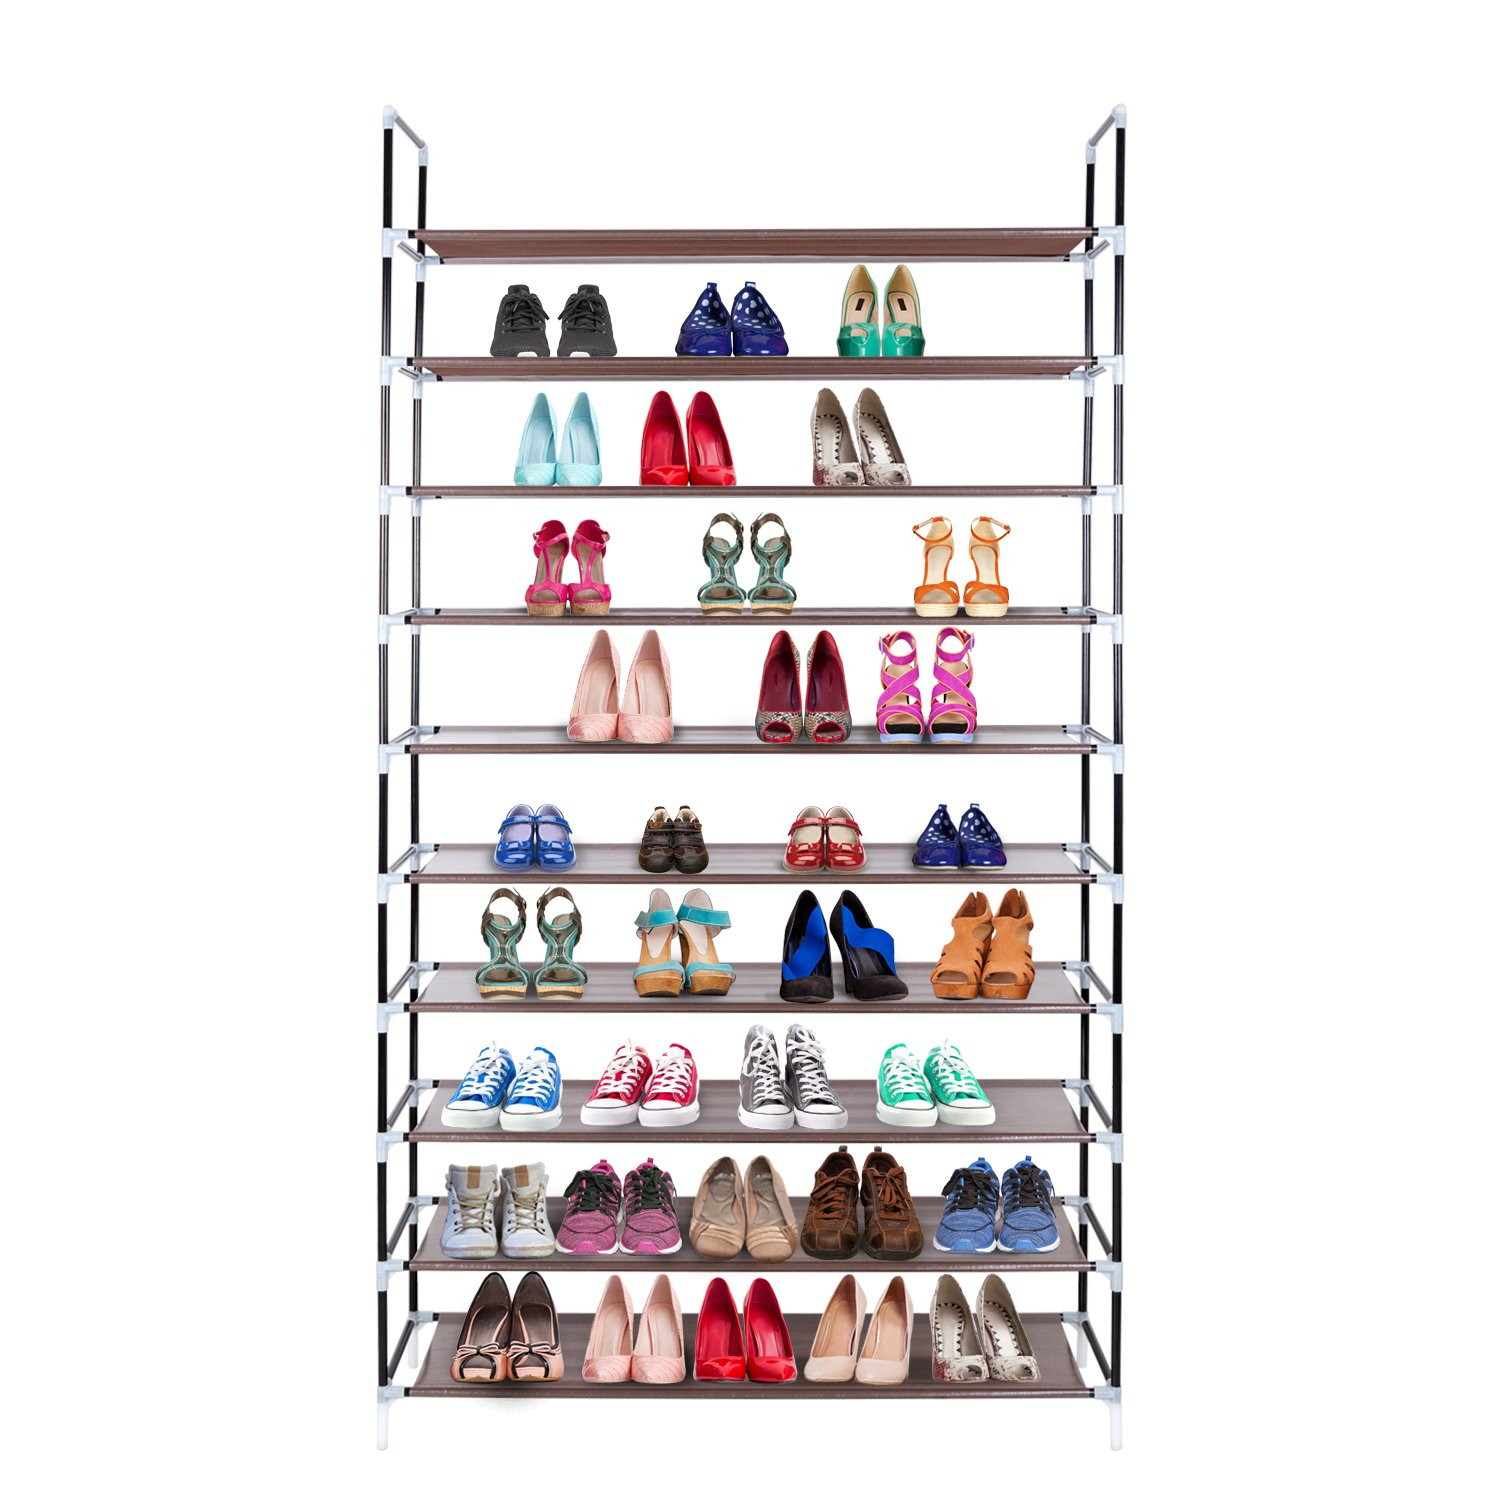 Awenia Shoe Rack 10 Tier Tall Metal for 30-50 pairs,Free Standing Adjustable Shoes Storage Organizer Door Shelves Space Saver,99x28x178cm